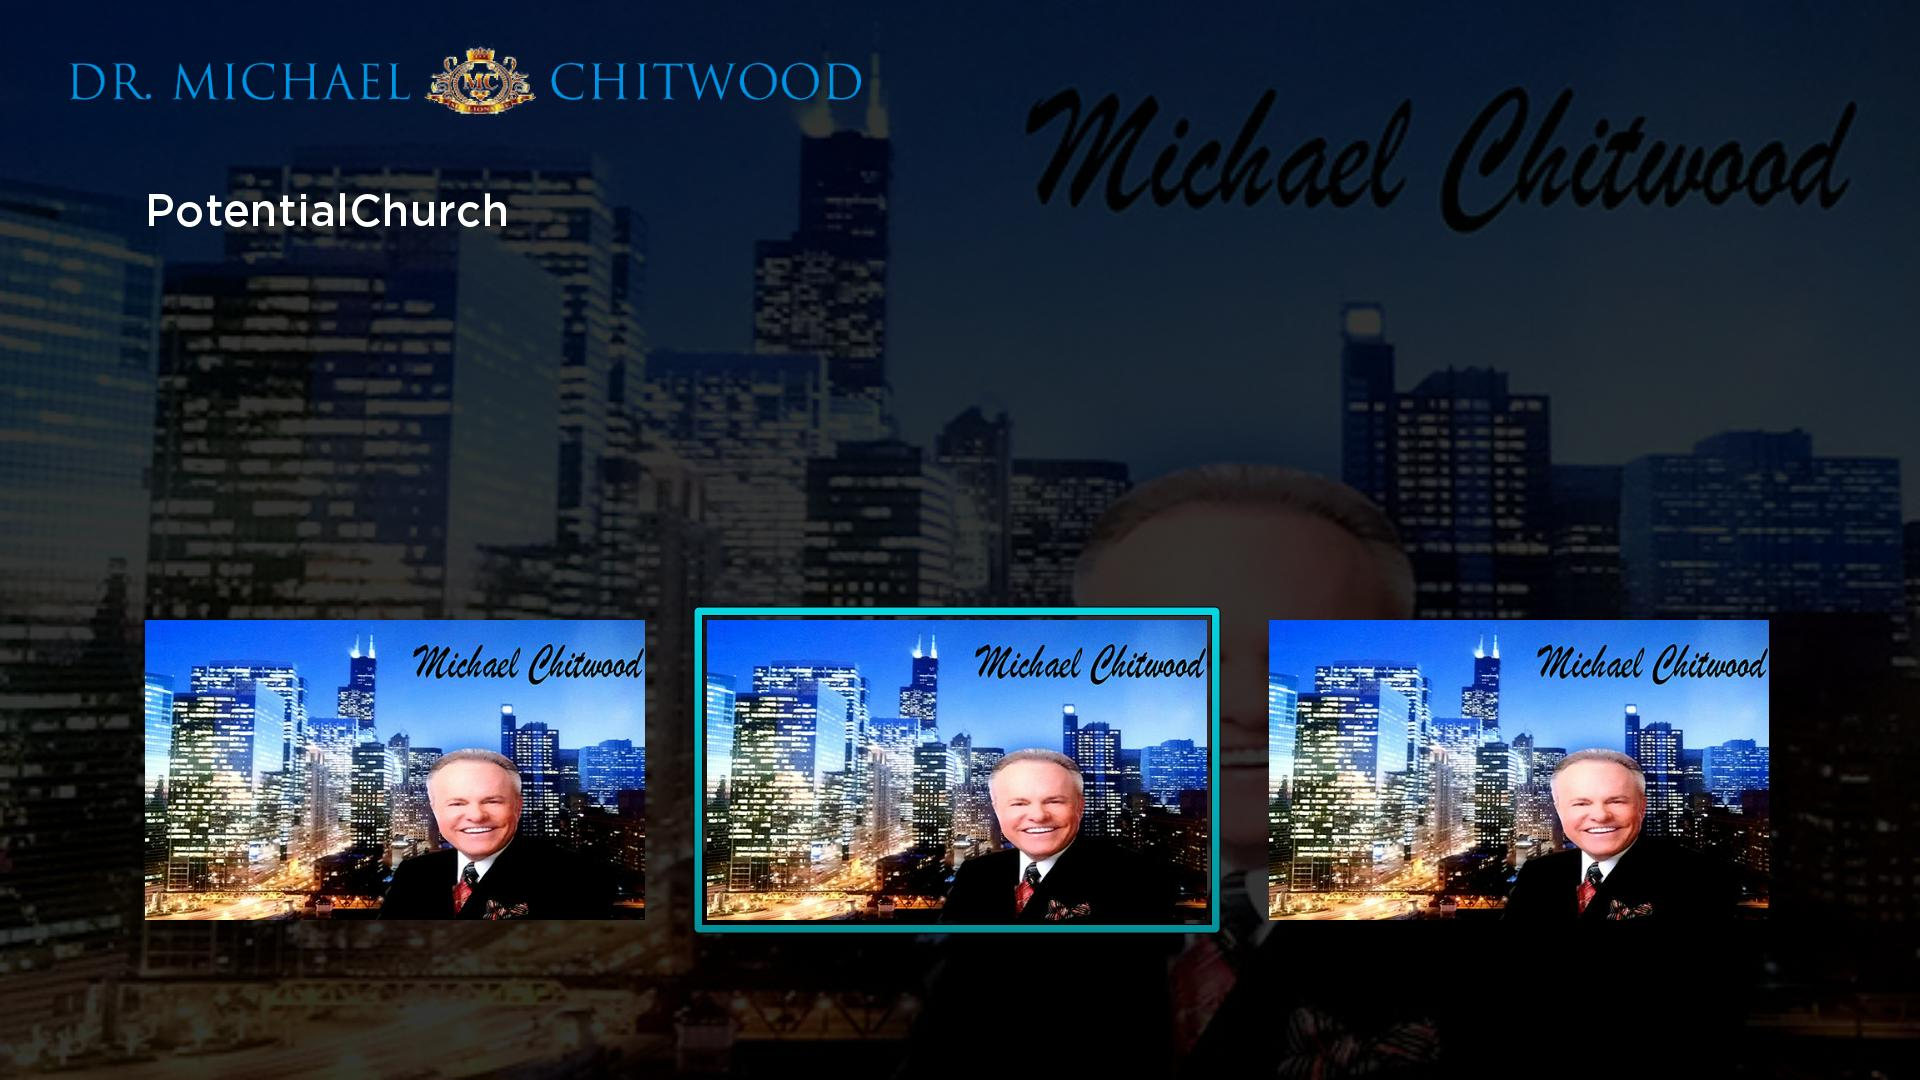 Michael Chitwood Screenshot 001